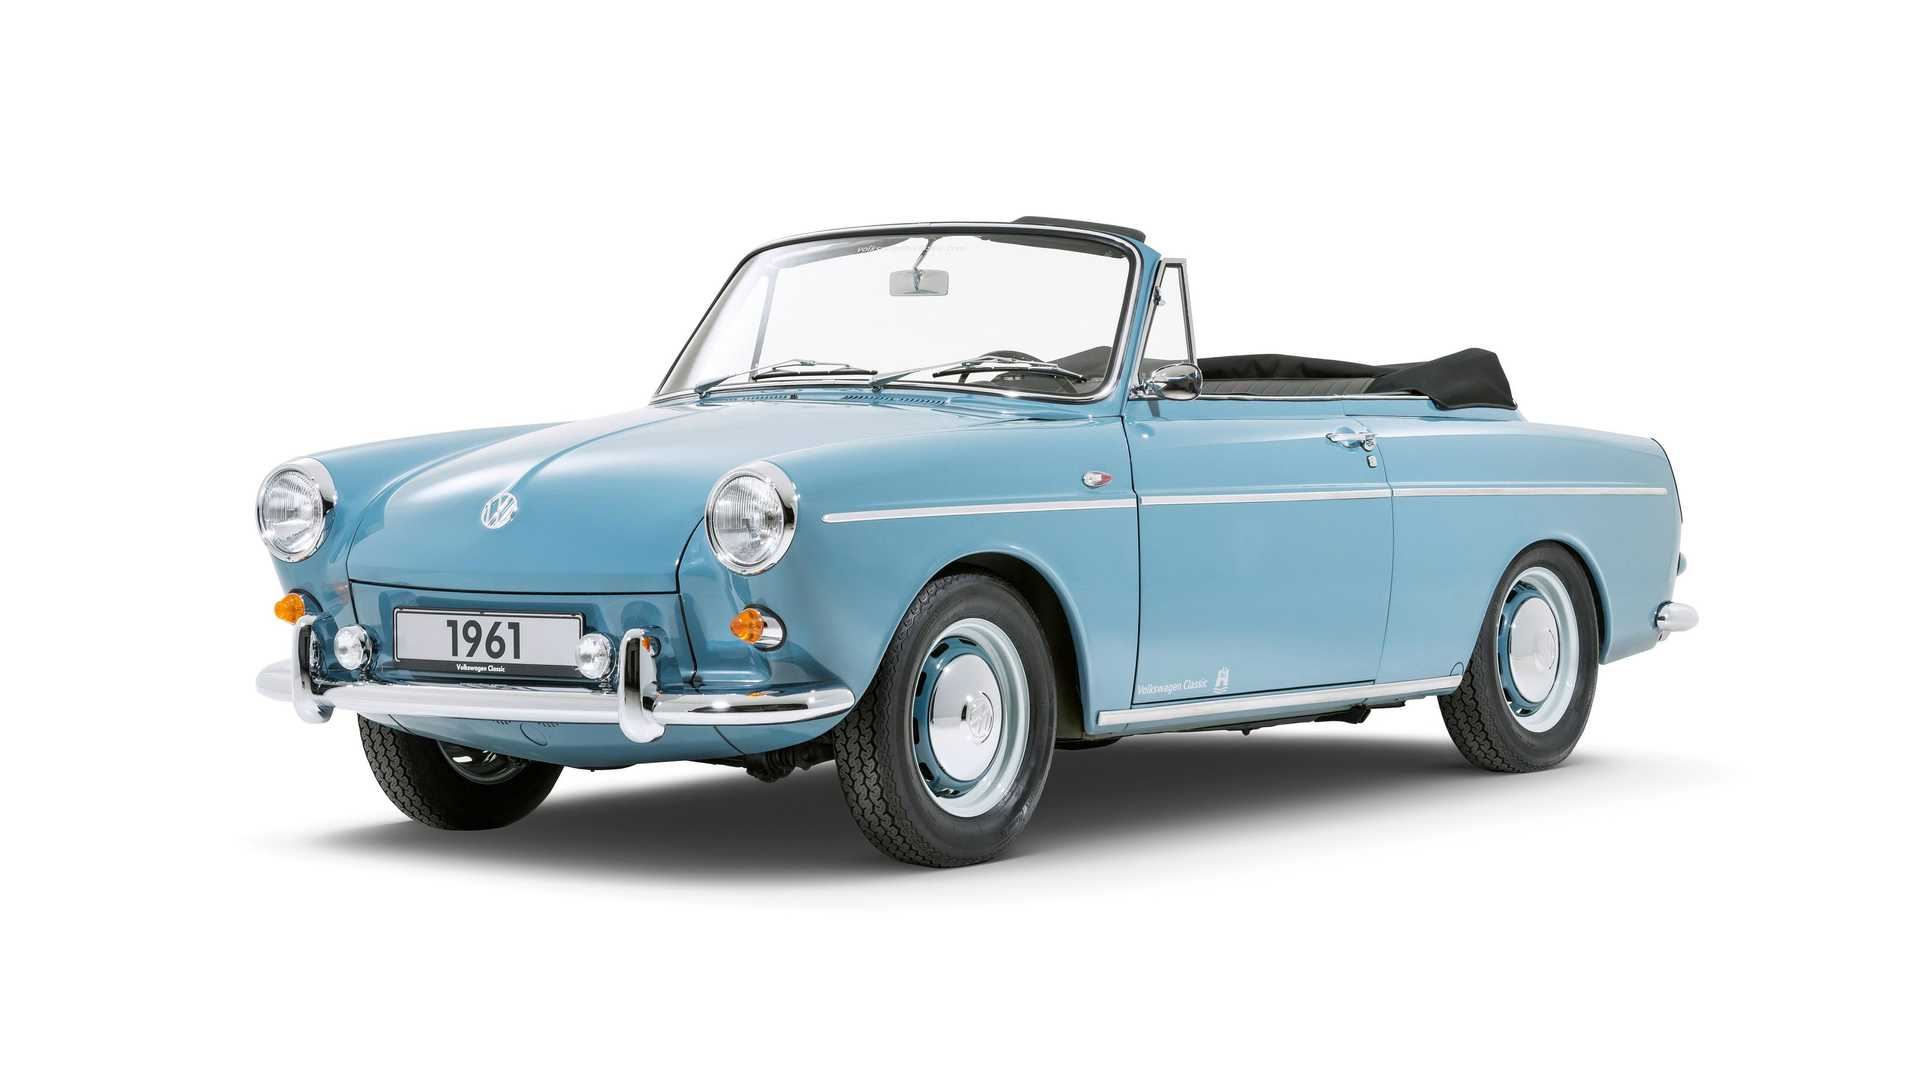 vw-beetle-replacement-prototype-1961-type-3-cabriolet